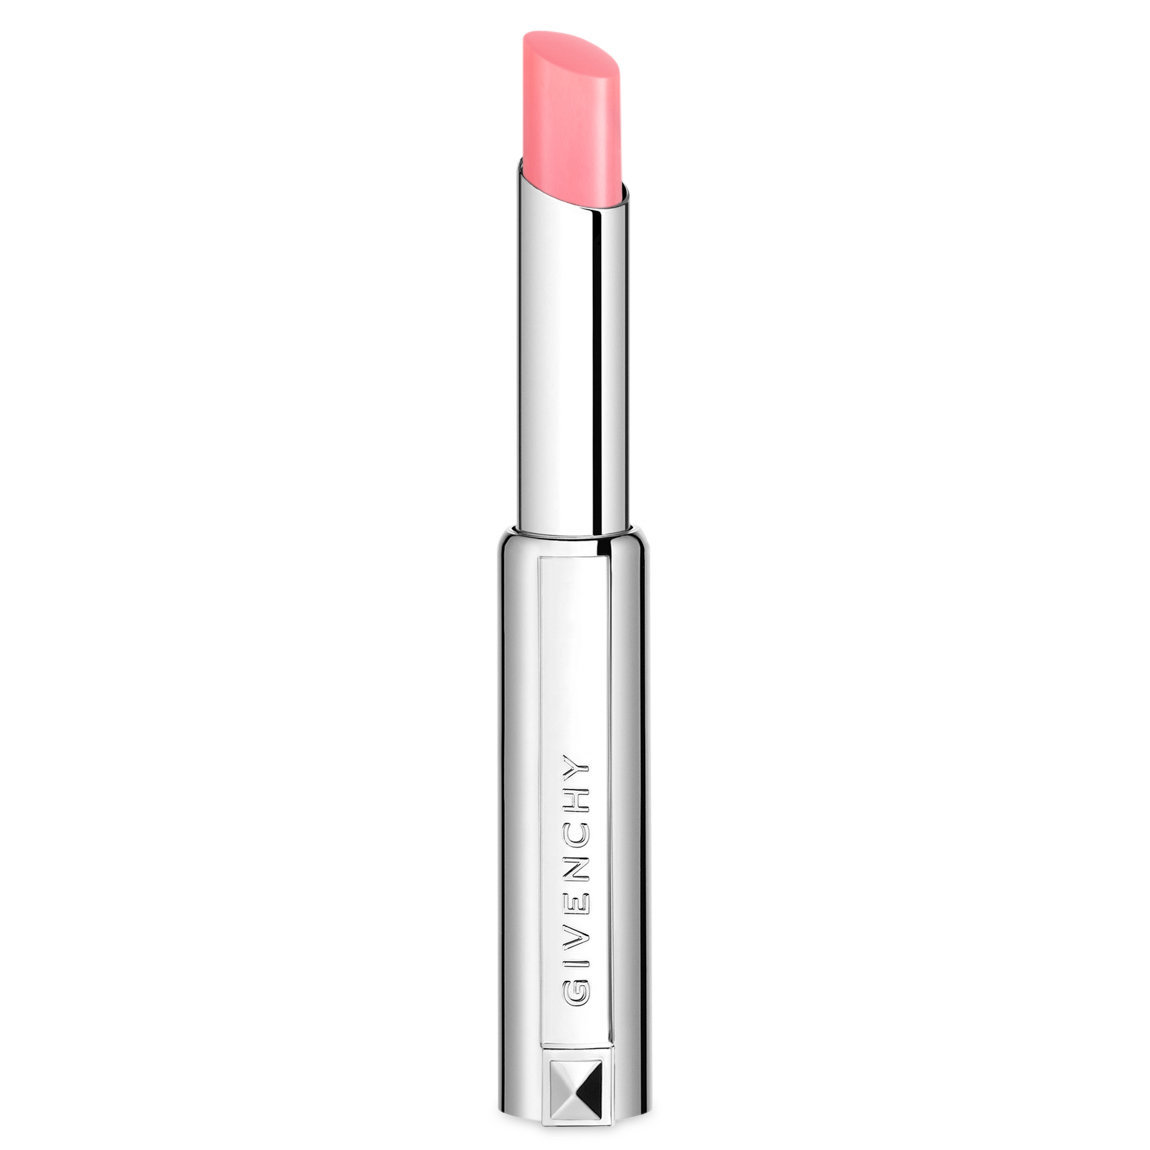 Givenchy Le Rouge Perfecto N01 Perfect Pink alternative view 1.